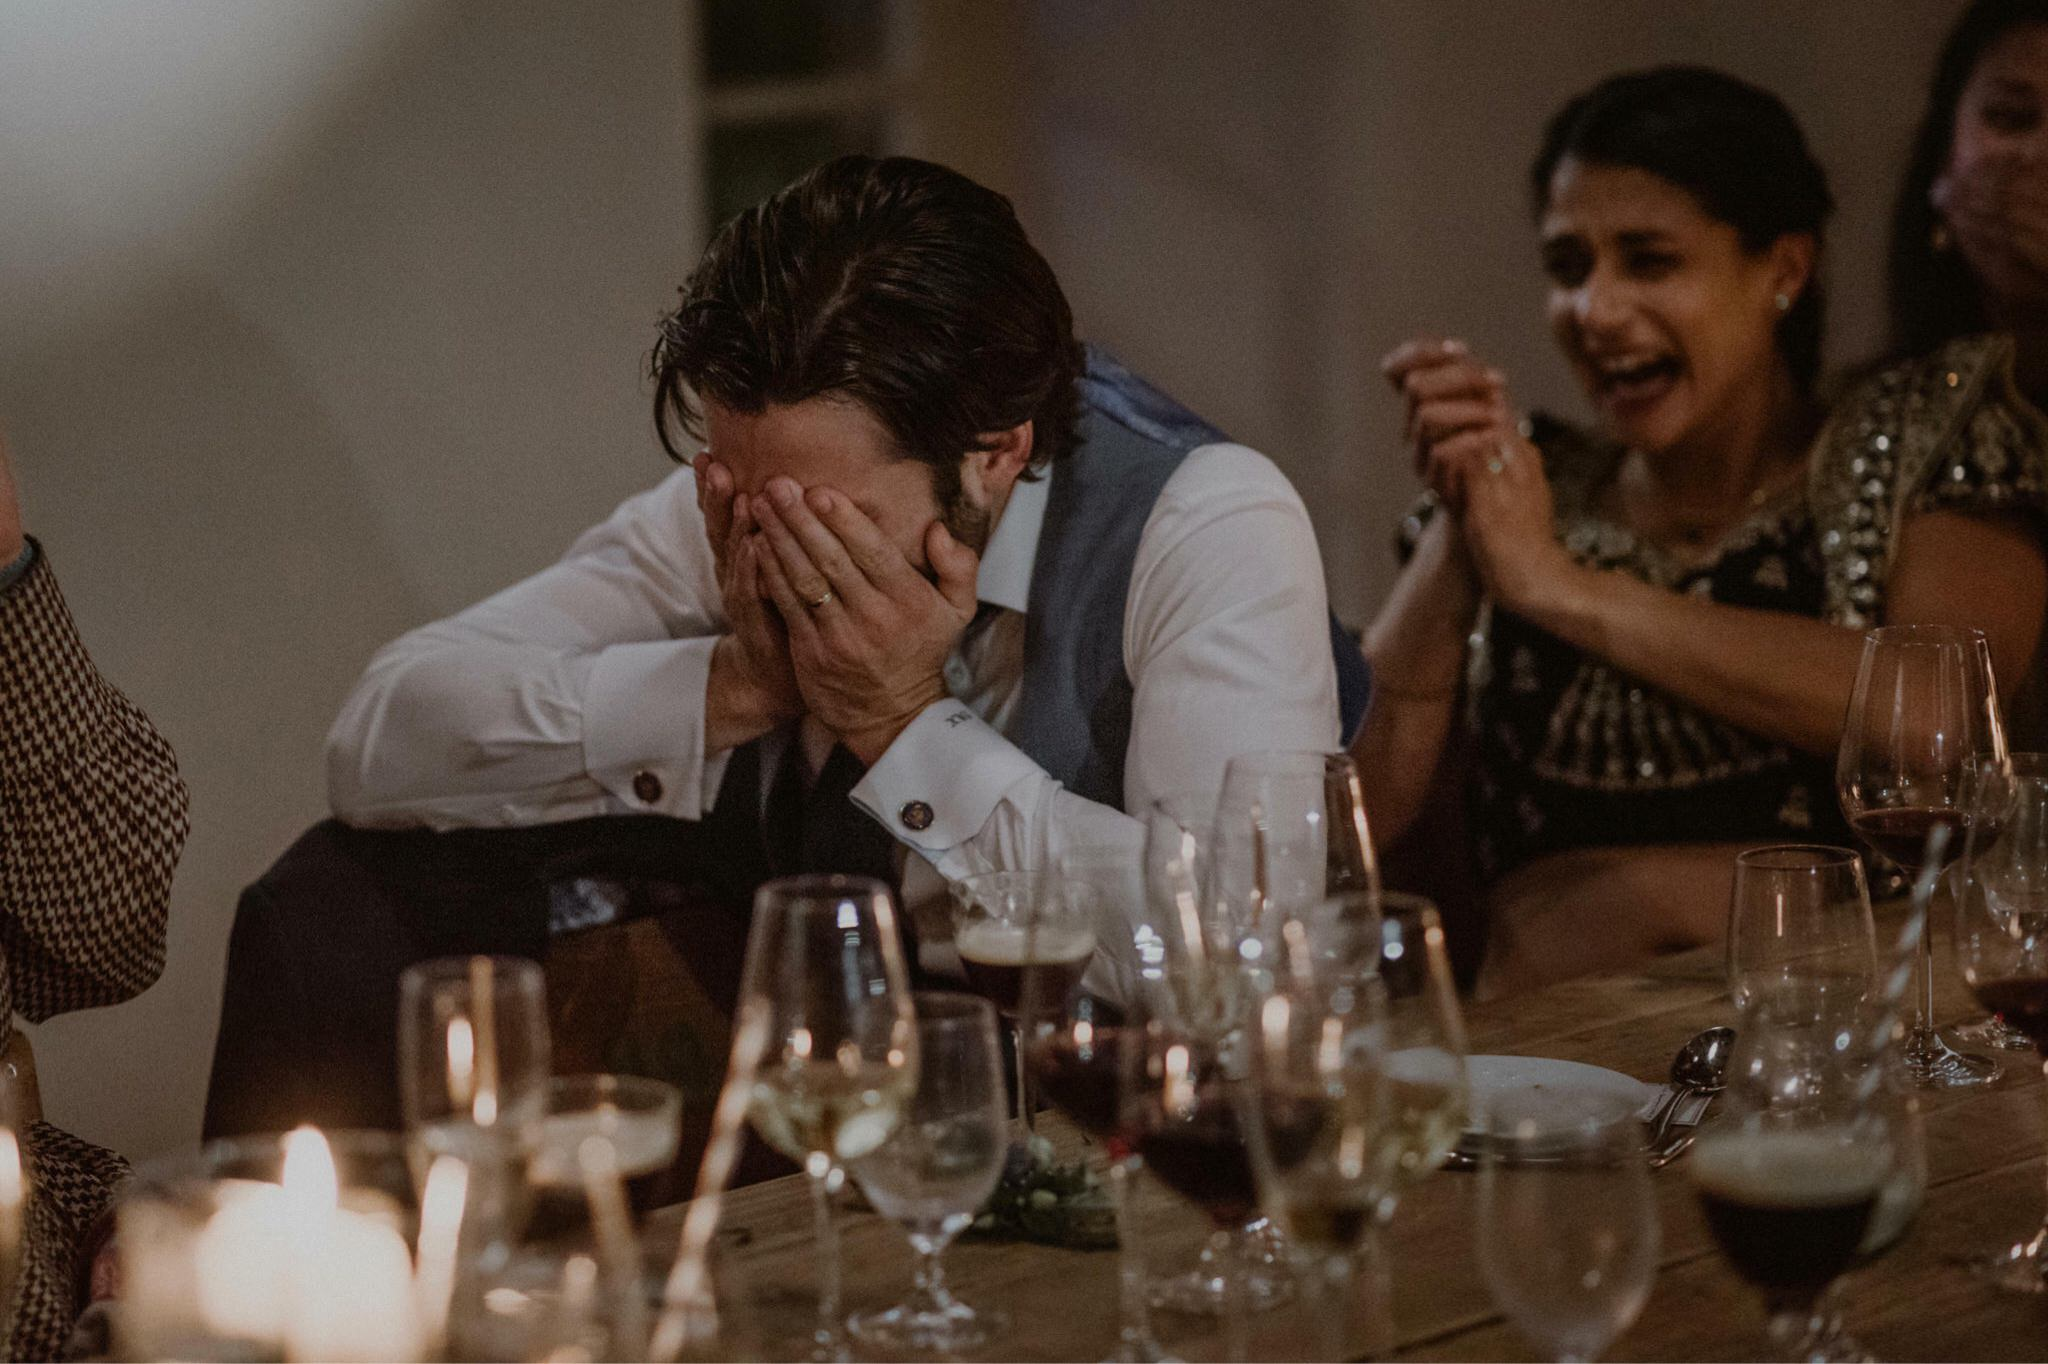 Reactions at wedding speeches